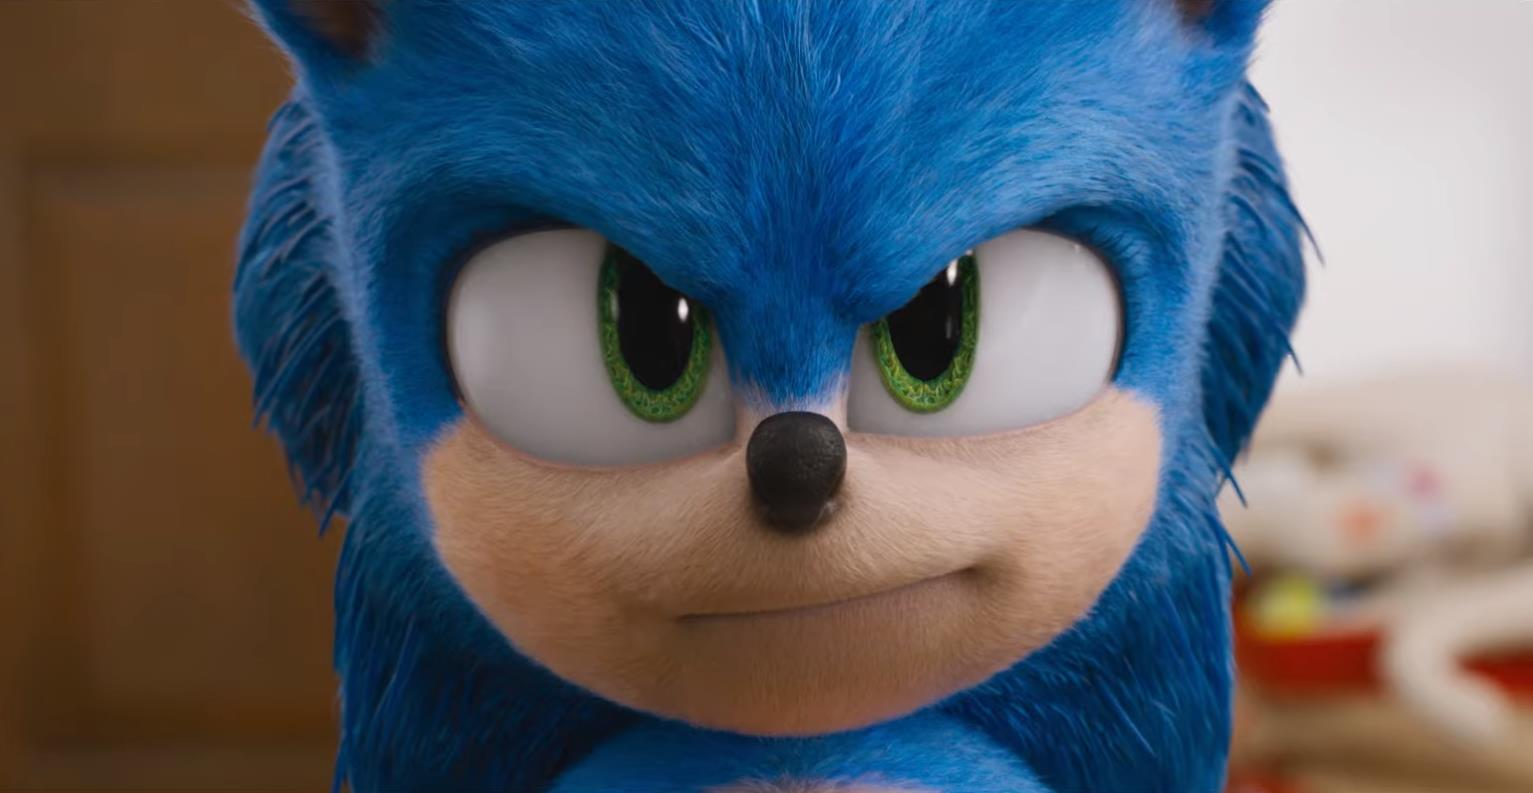 Here S Our First Look At The Updated Sonic The Hedgehog Design In The New Movie Trailer Vg247